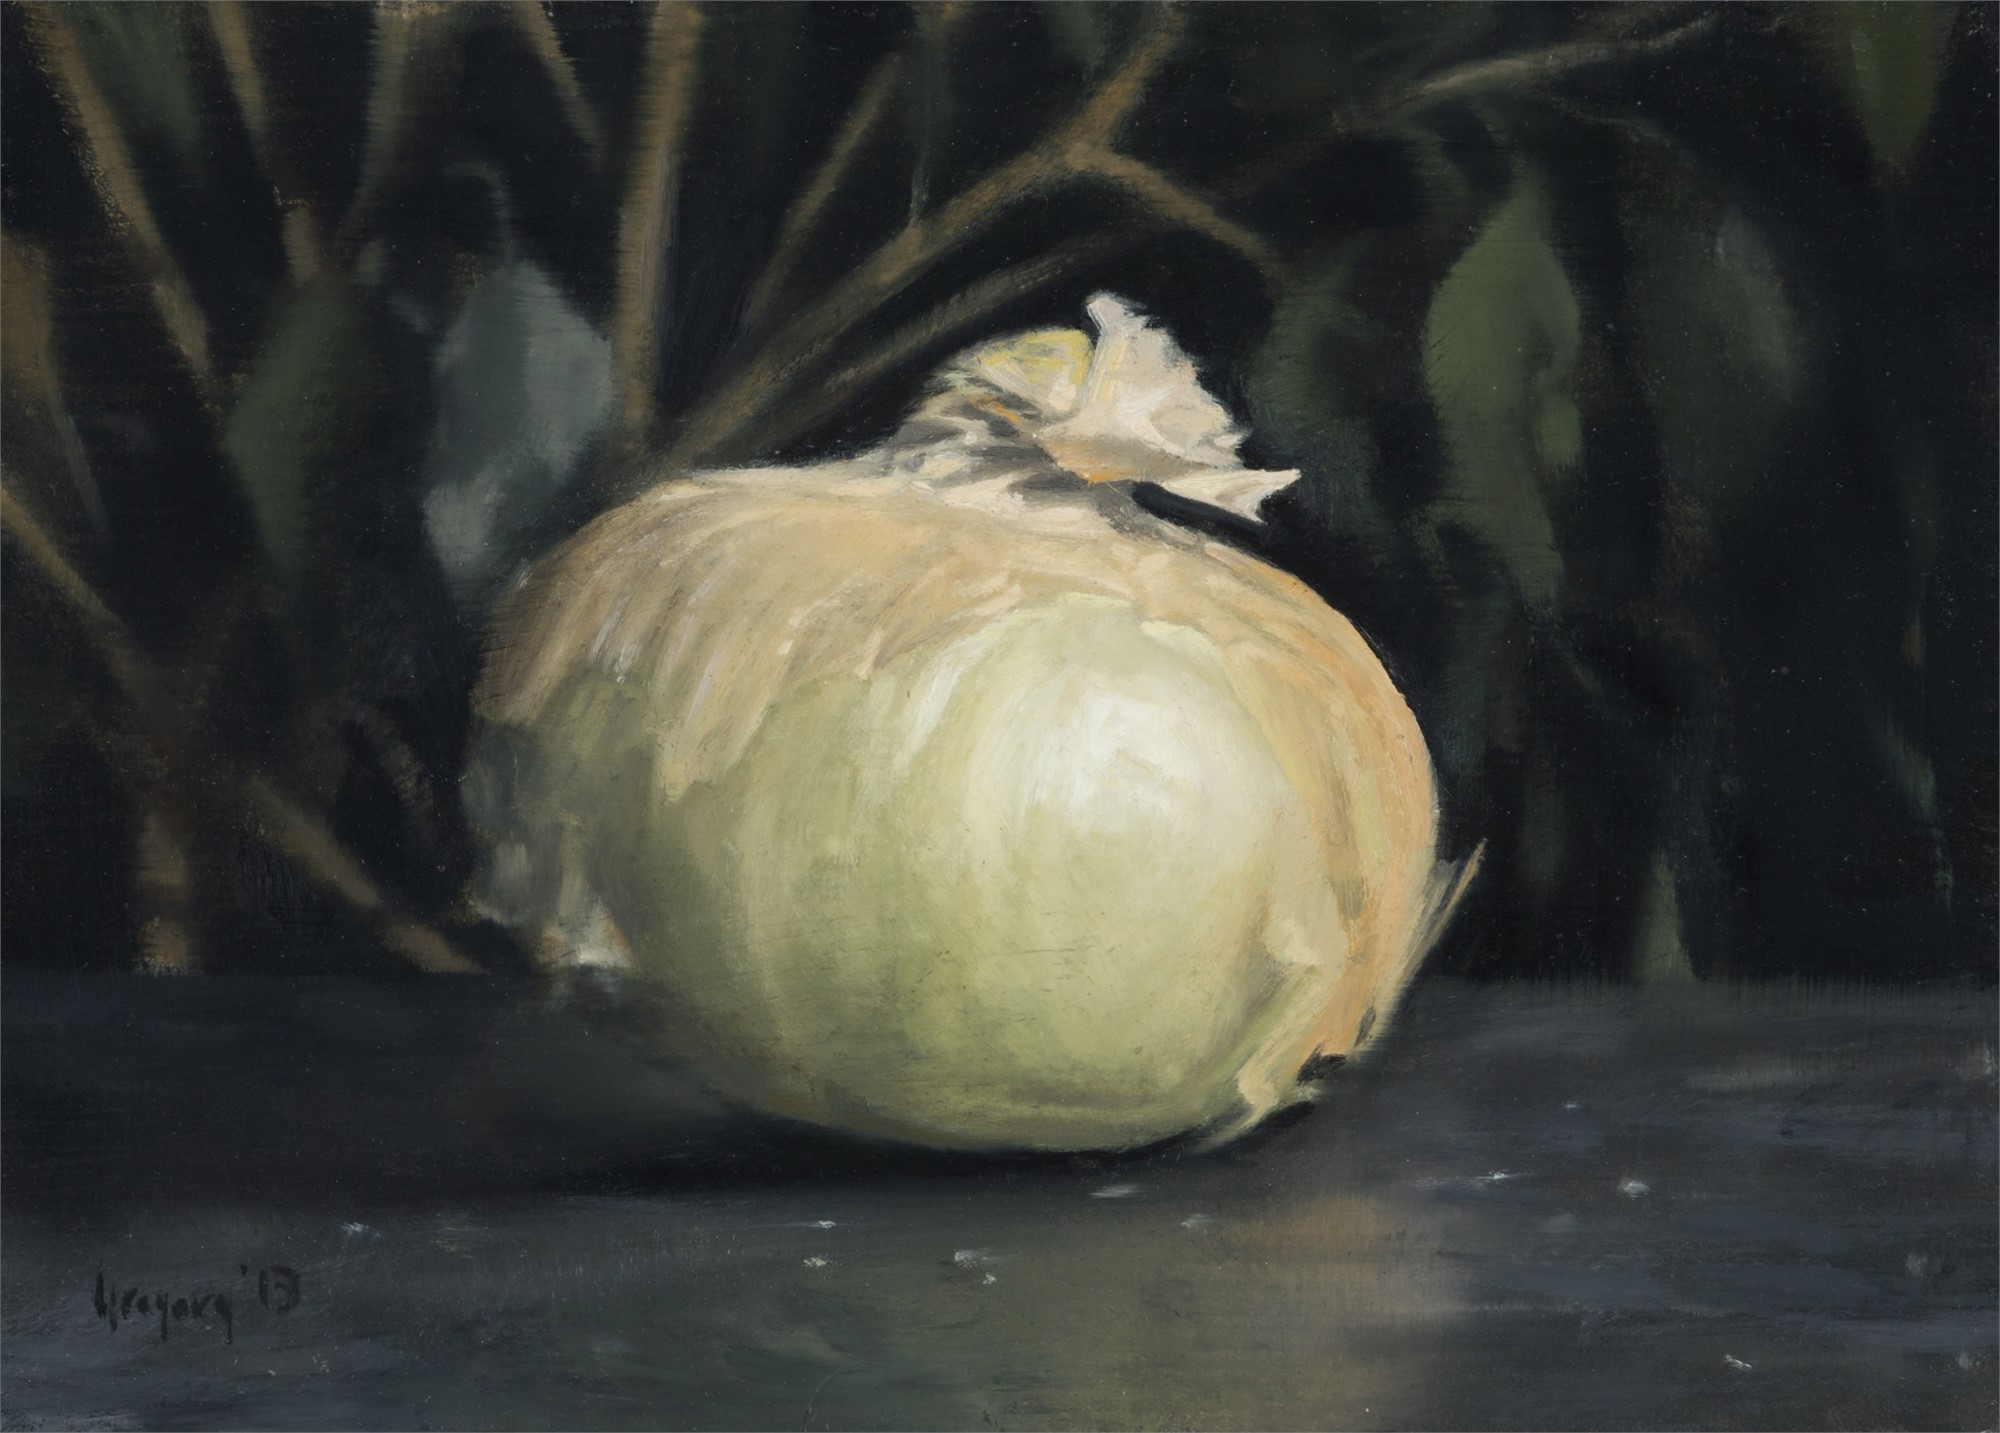 Onion by Gregory Block